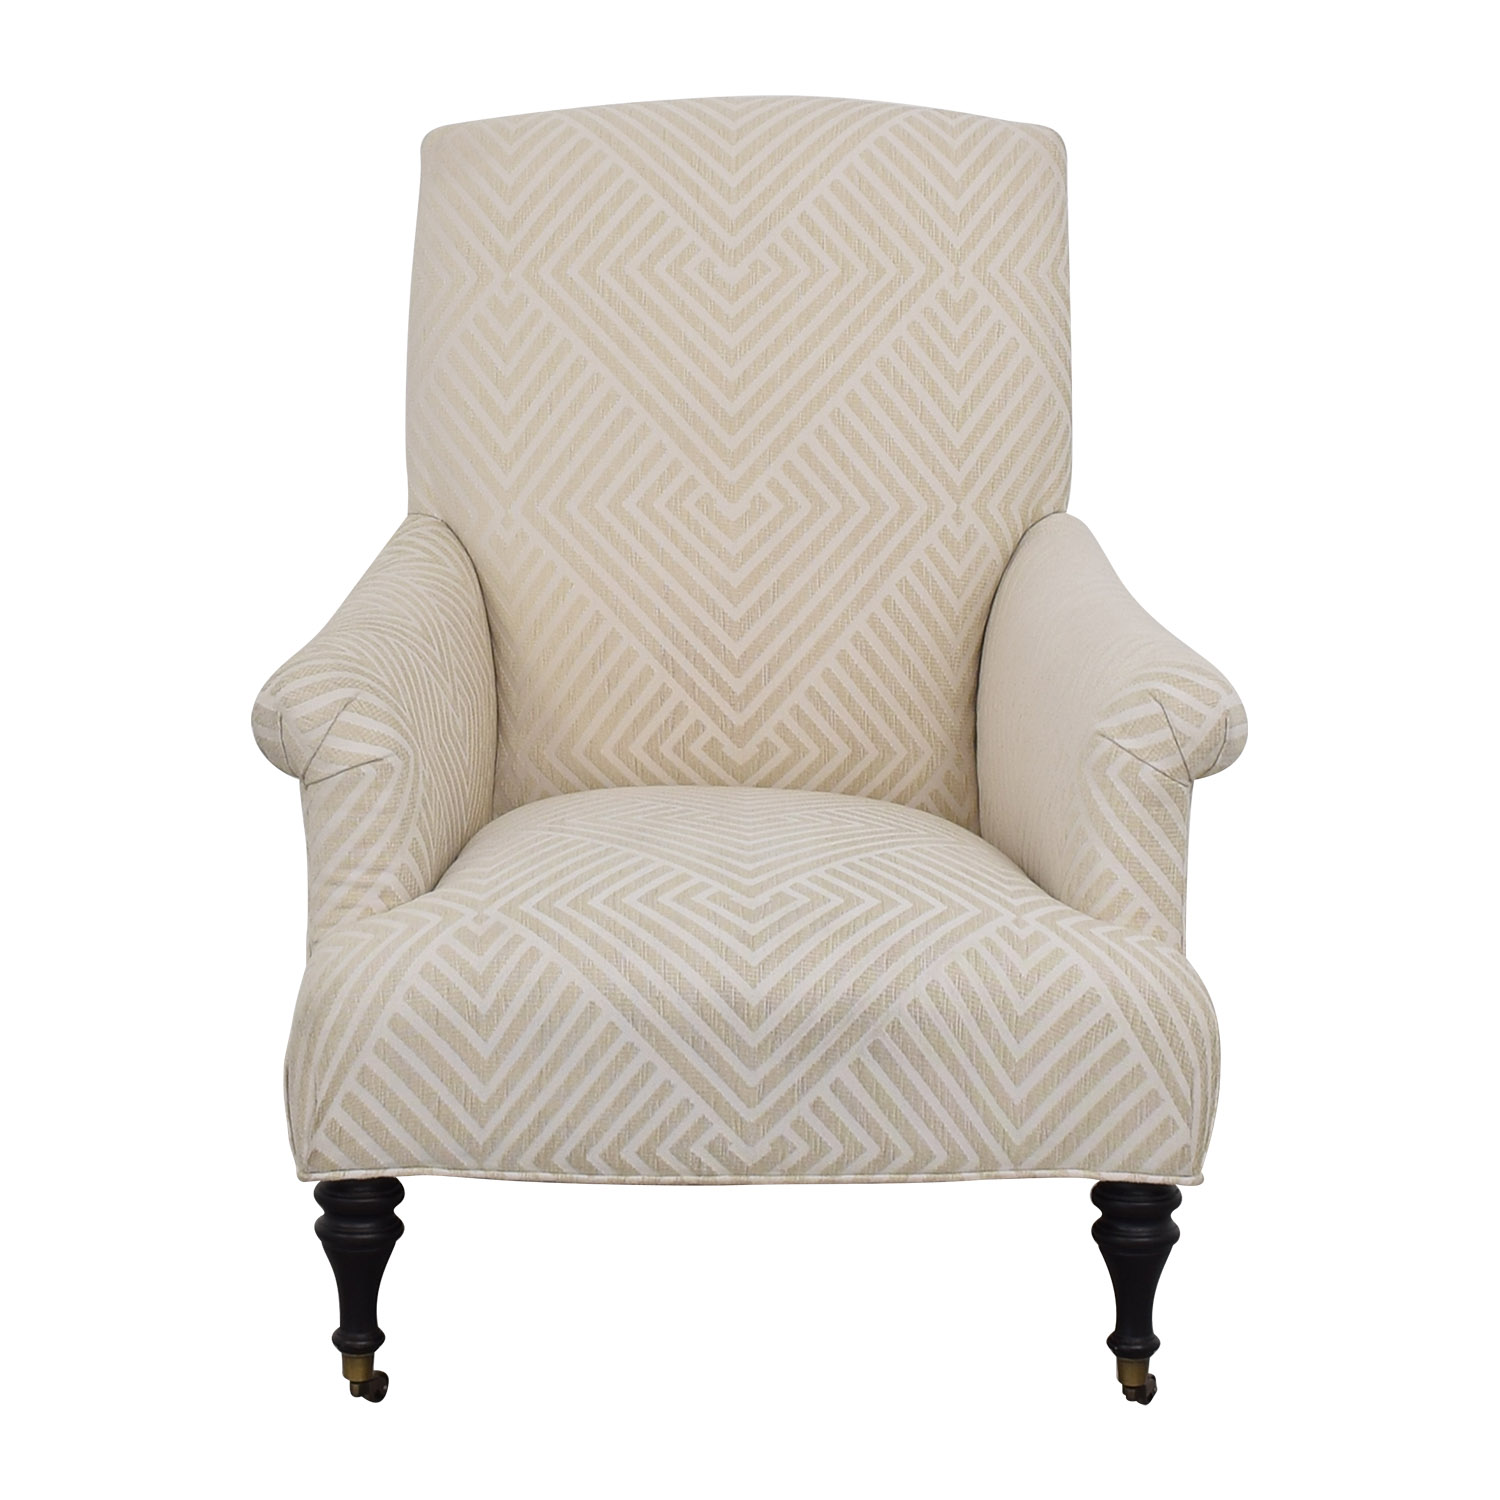 Mitchell Gold + Bob Williams Mitchell Gold + Bob Williams Upholstered Armchair nyc